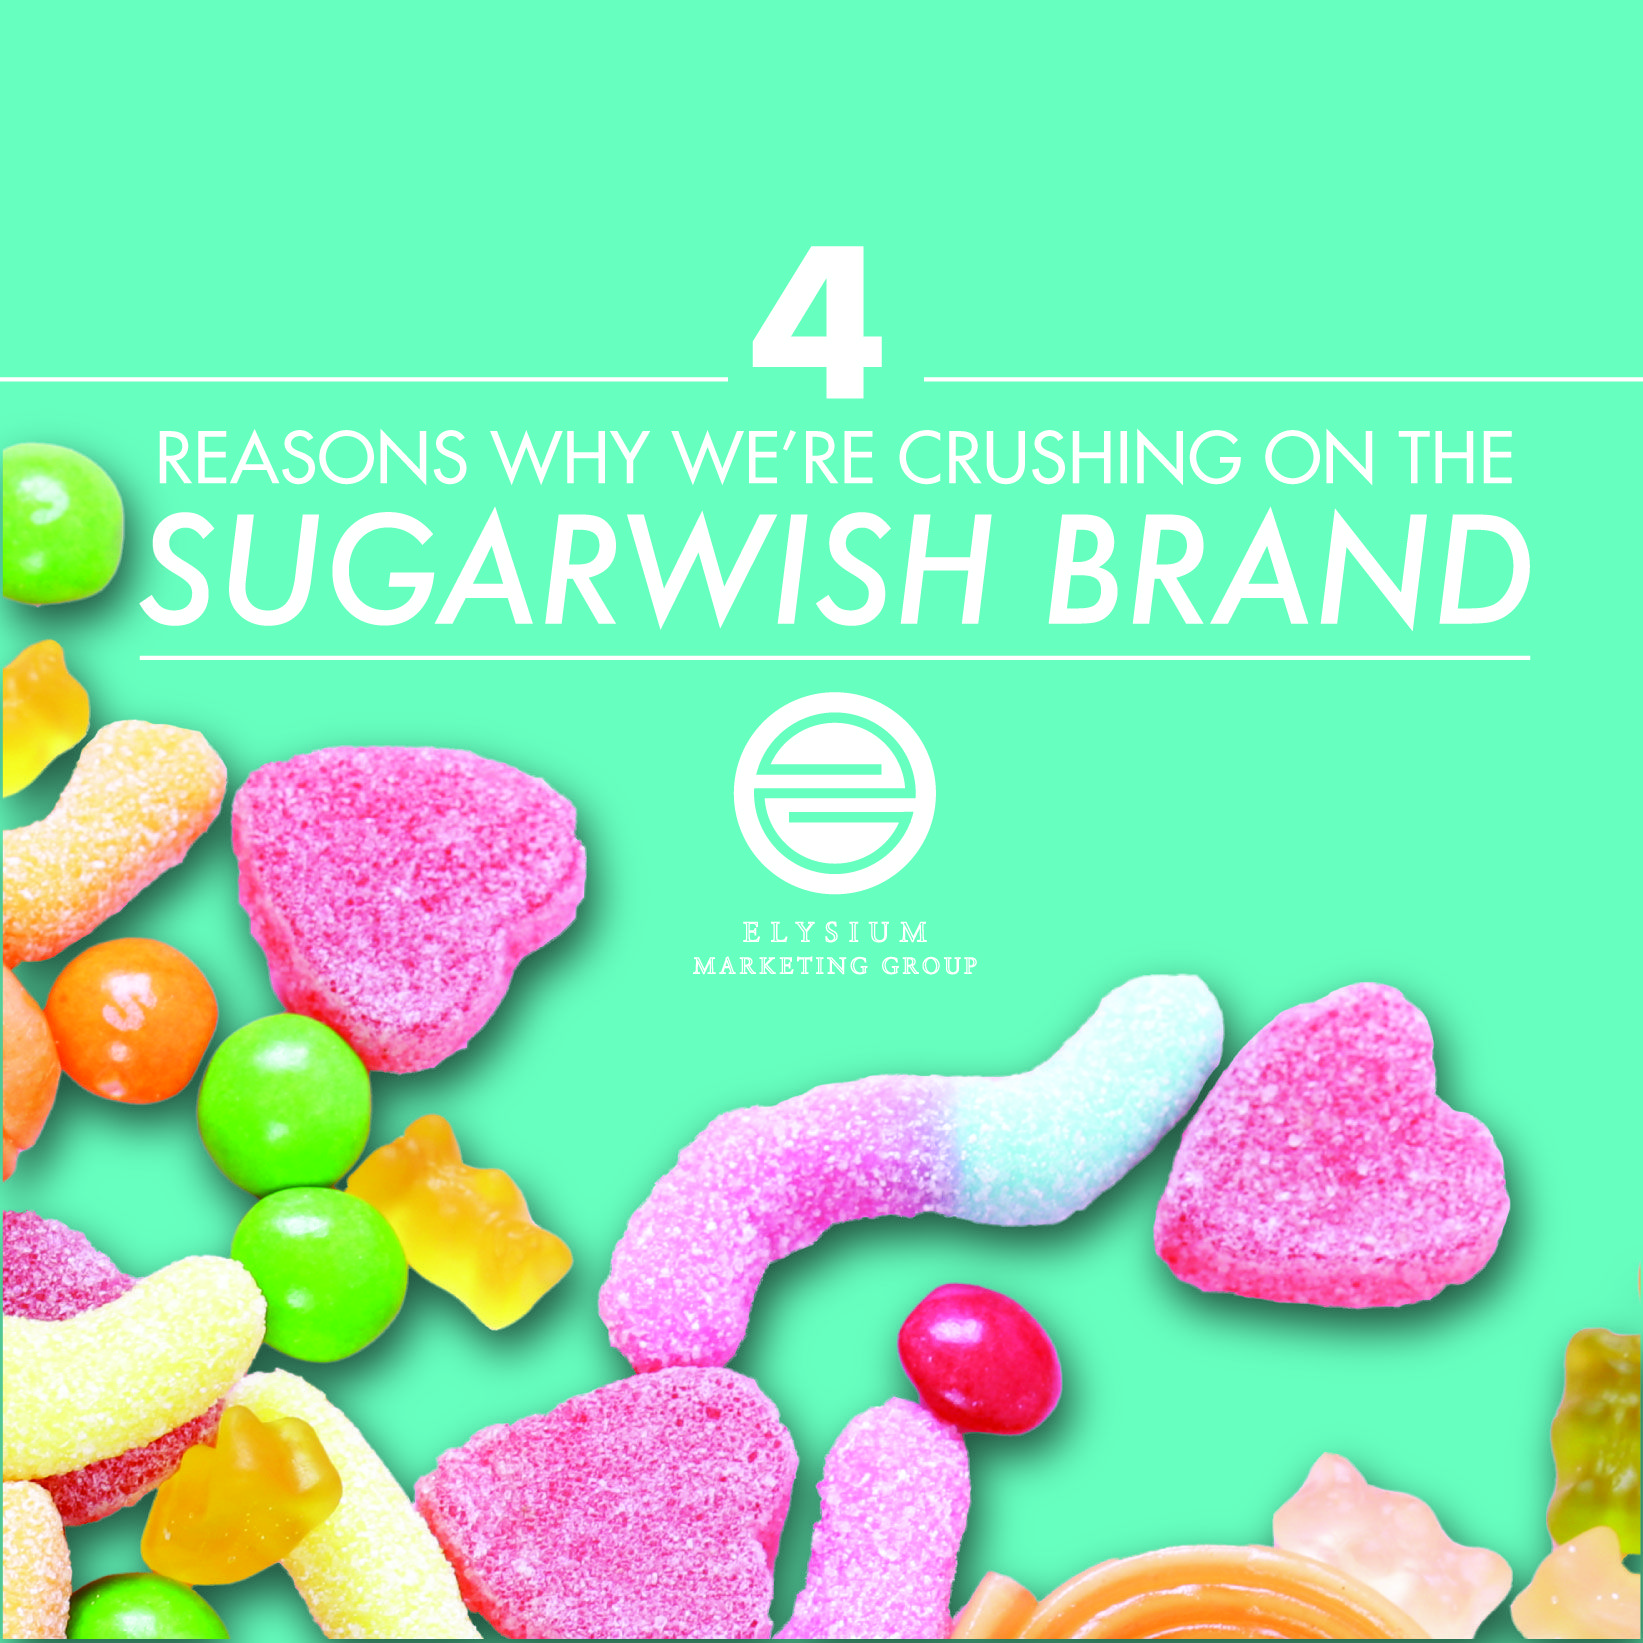 #blog #marketing #marketingcreative #marketingstrategy #candy #design #contentmarketing